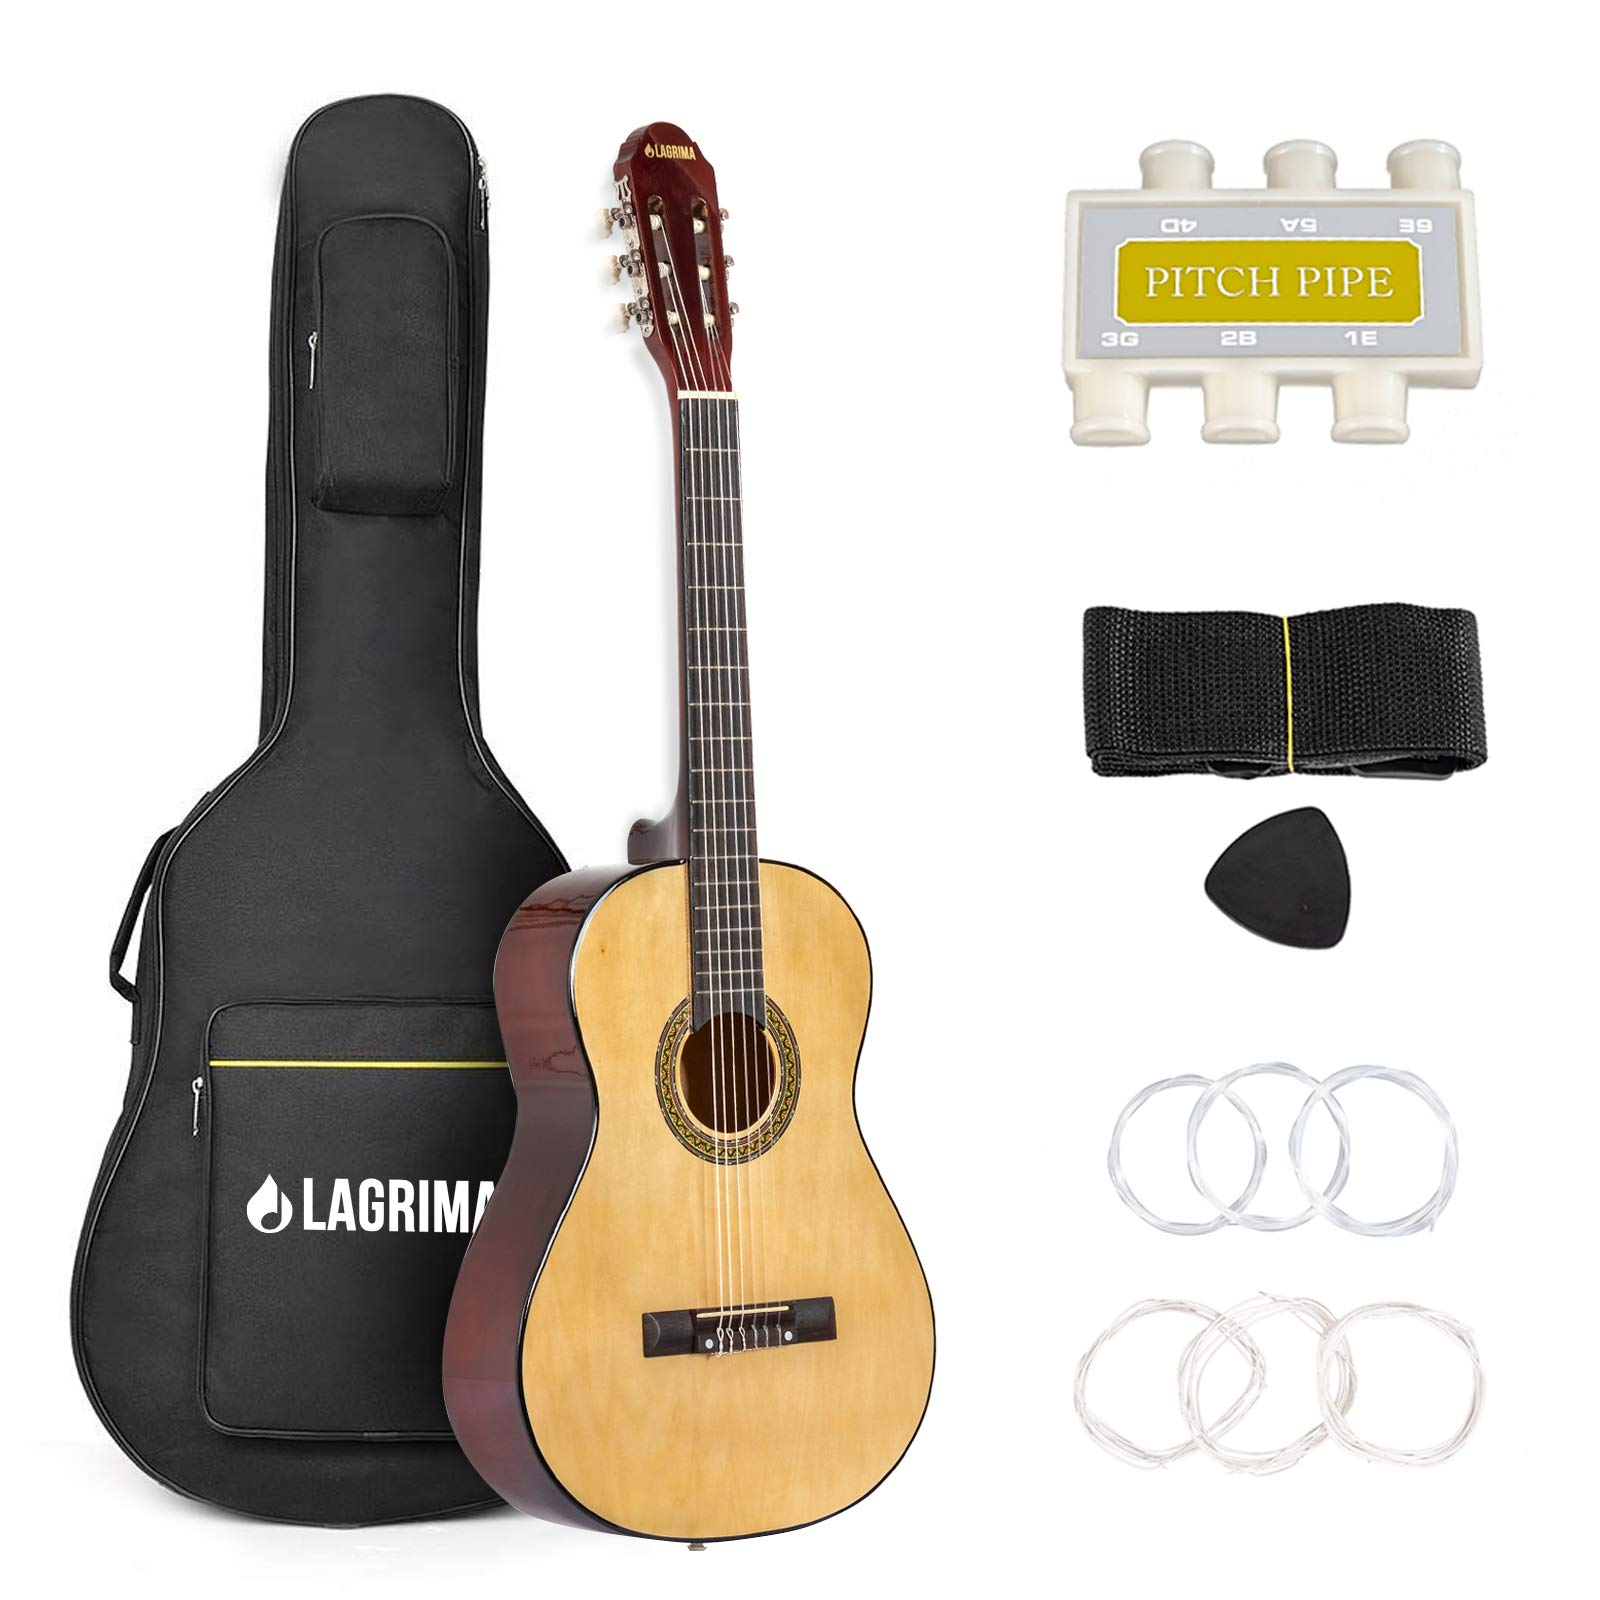 LAGRIMA 39'' Classical Guitar Beginners with Guitar Case, Strap, Tuner, Picks and Steel Strings (Natural) by mecor